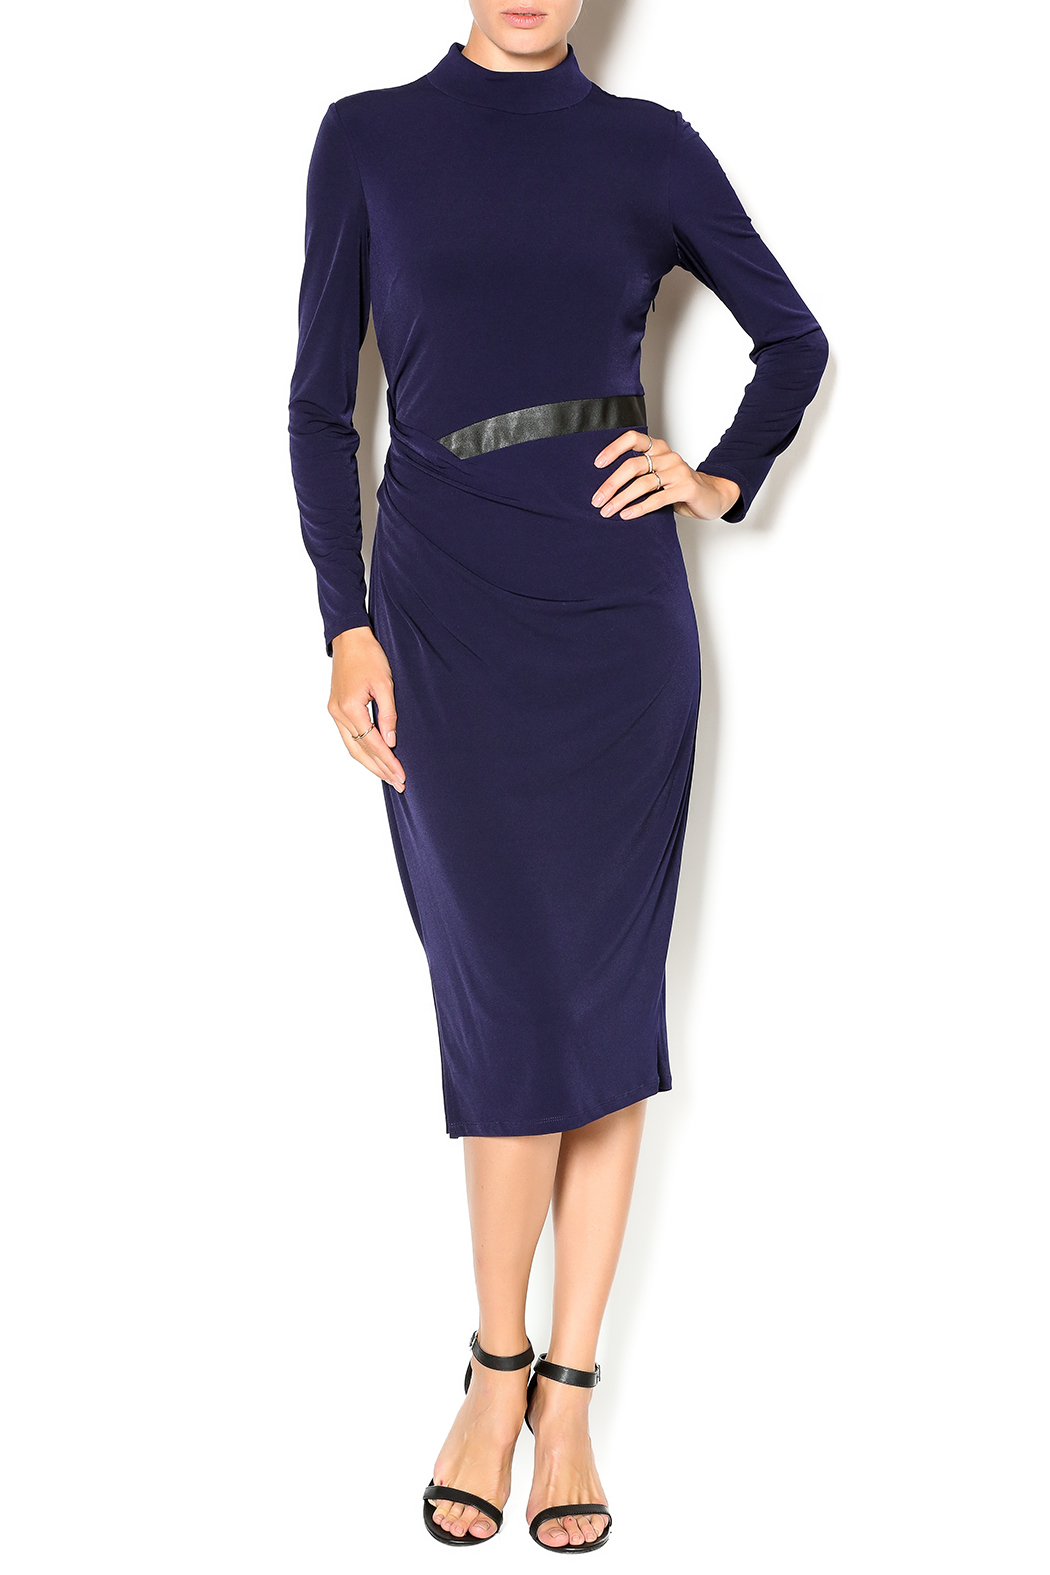 ivy + blue Mock Neck Dress from New Jersey by Ideal ...